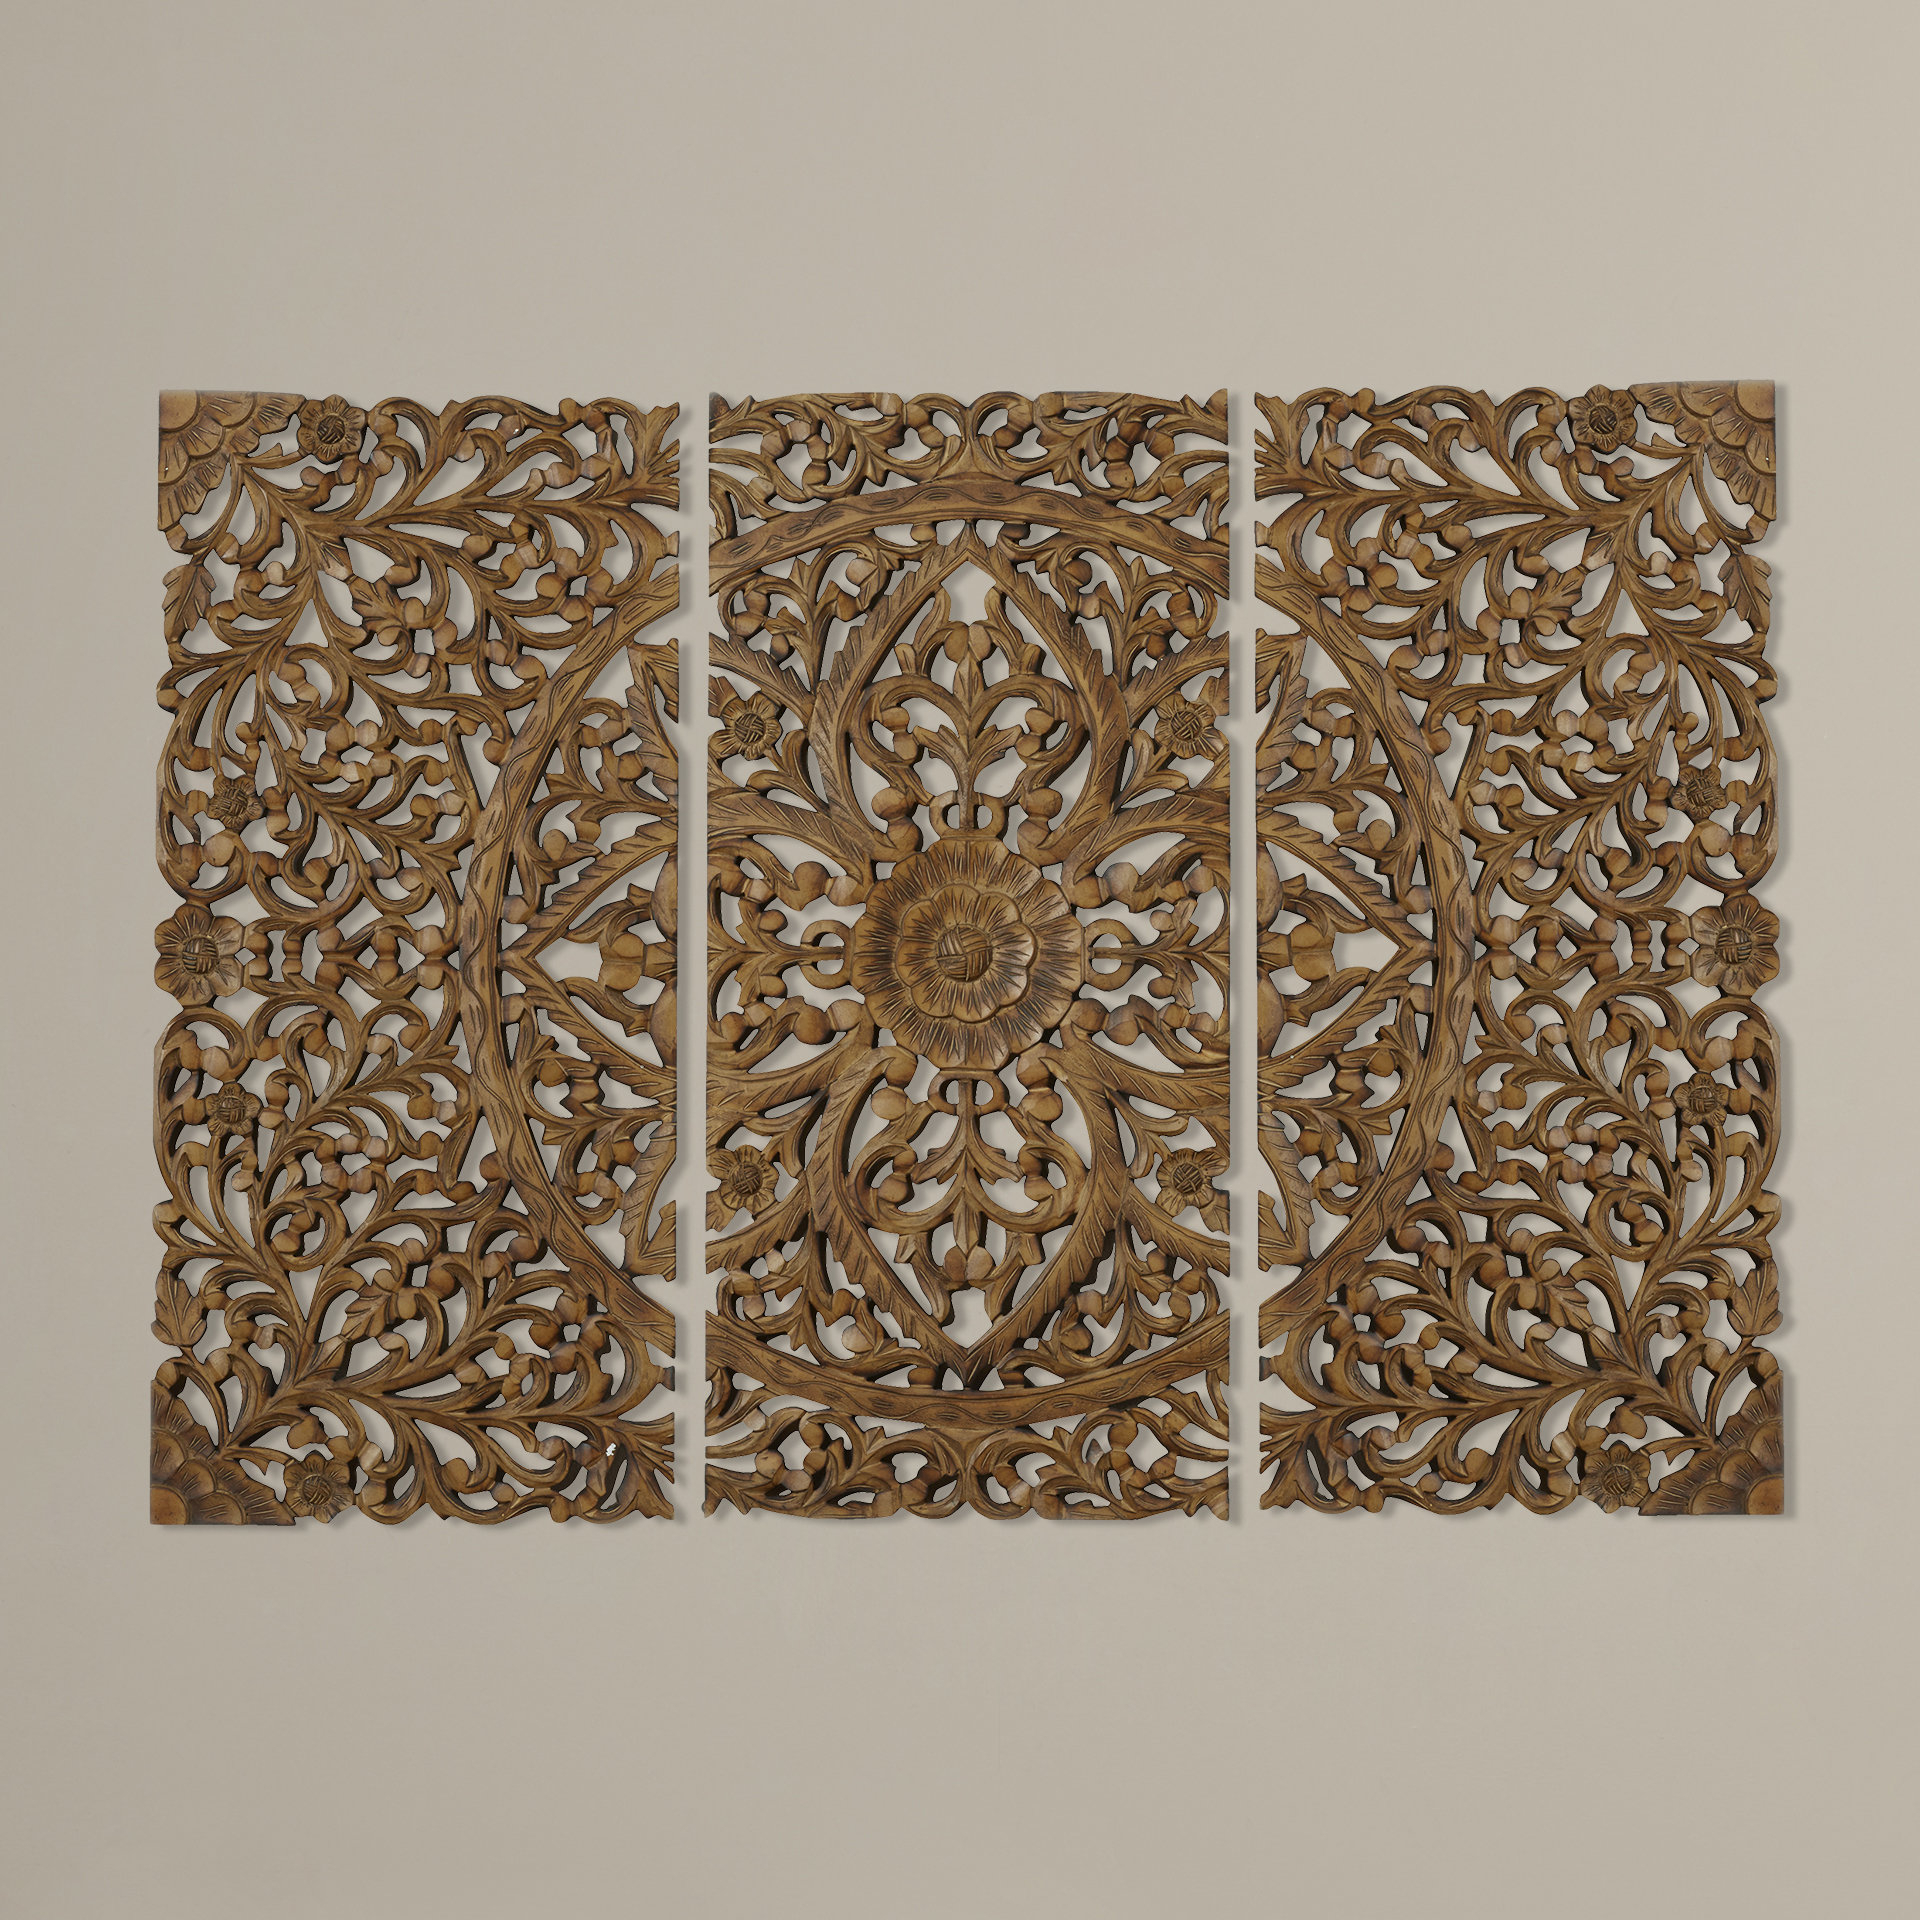 Wood Wall Art You'll Love In 2019 | Wayfair Throughout 2 Piece Panel Wood Wall Decor Sets (set Of 2) (View 15 of 30)